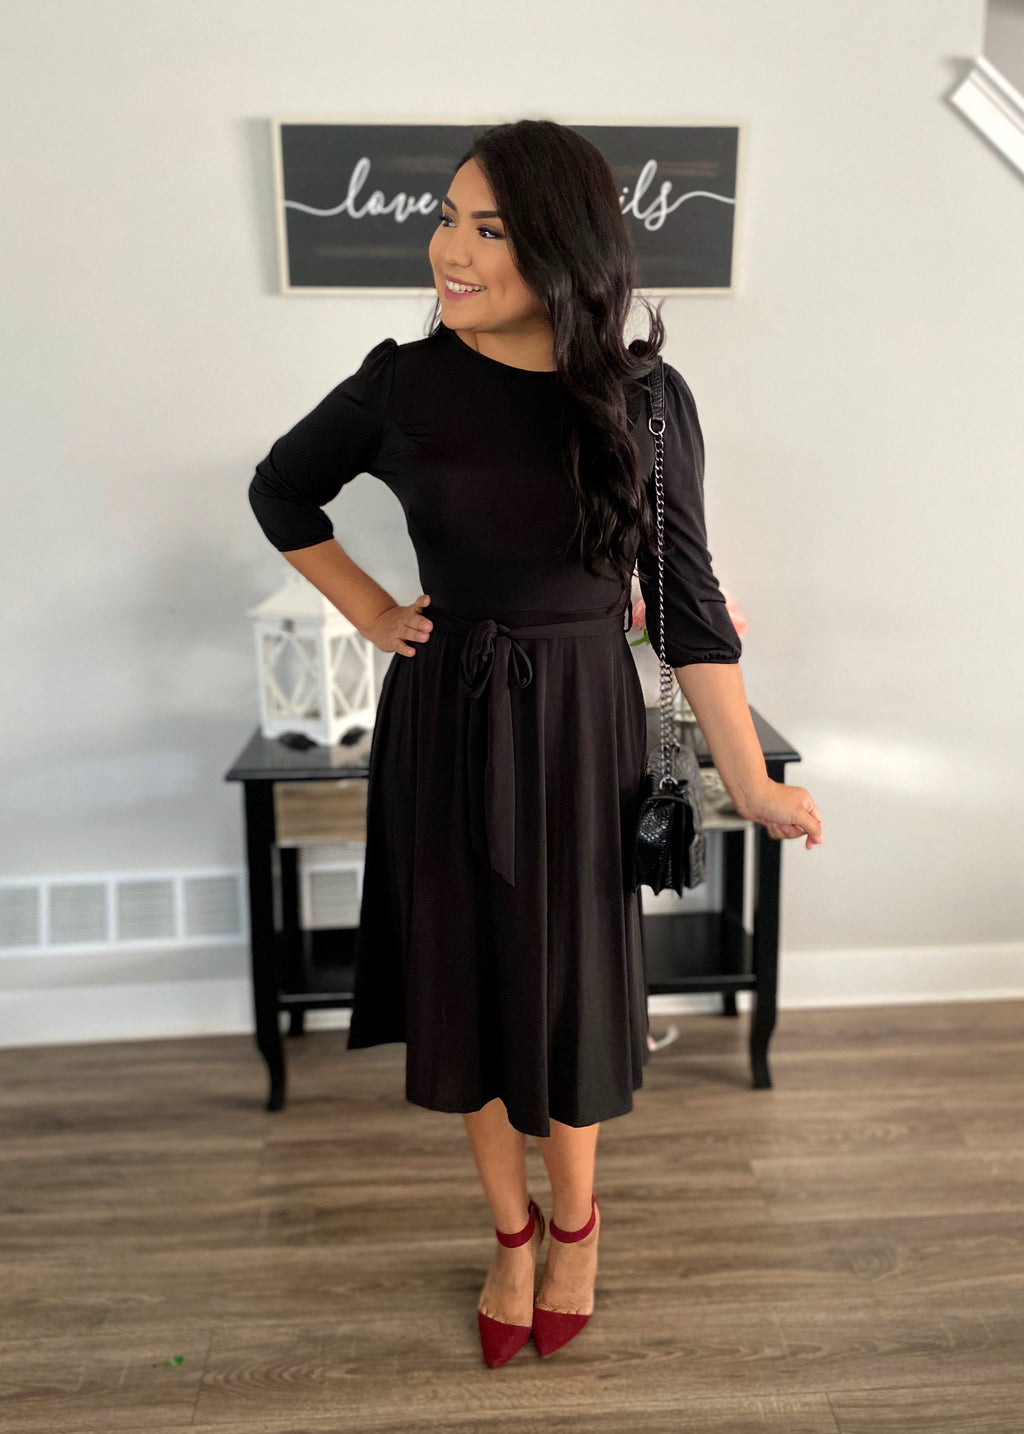 Forever Yours Dress - The Darling Style - Modest Dresses